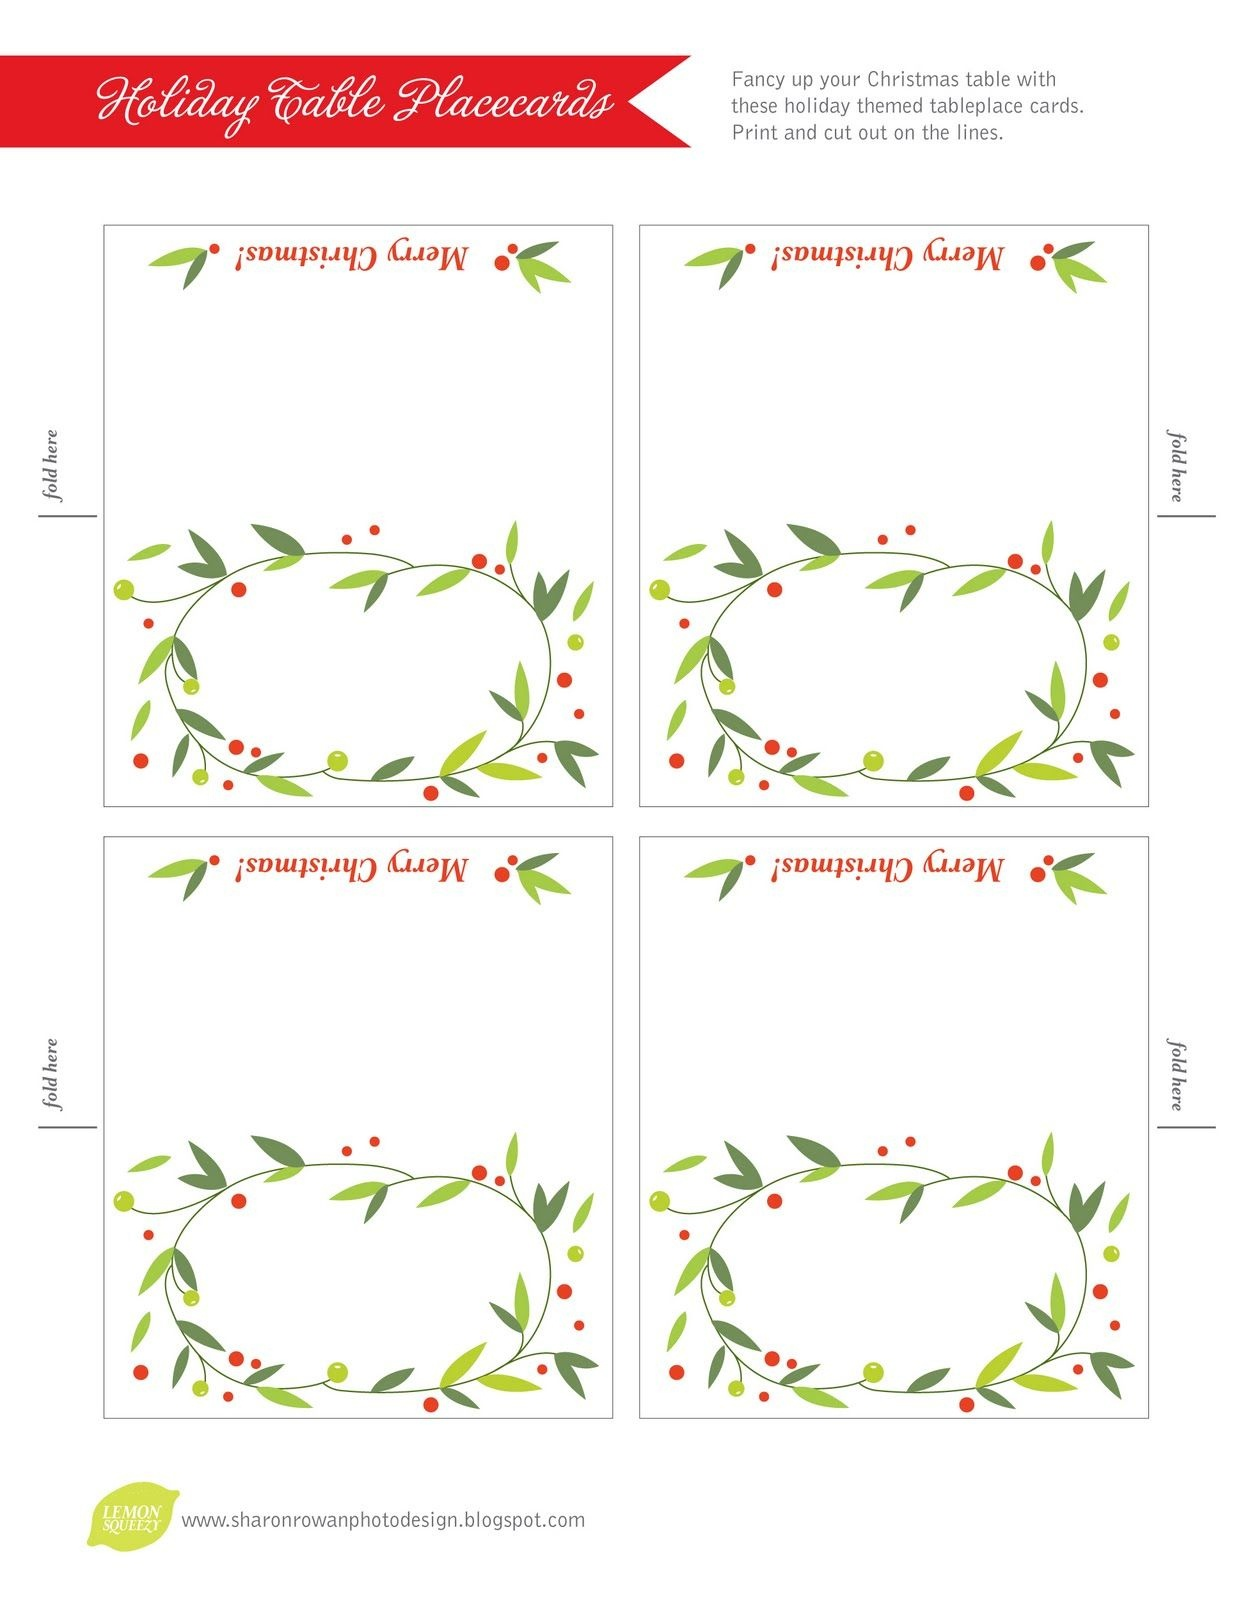 Pinkay Kostrencich On Event Ideas | Christmas Place Cards - Free Printable Christmas Place Name Tags